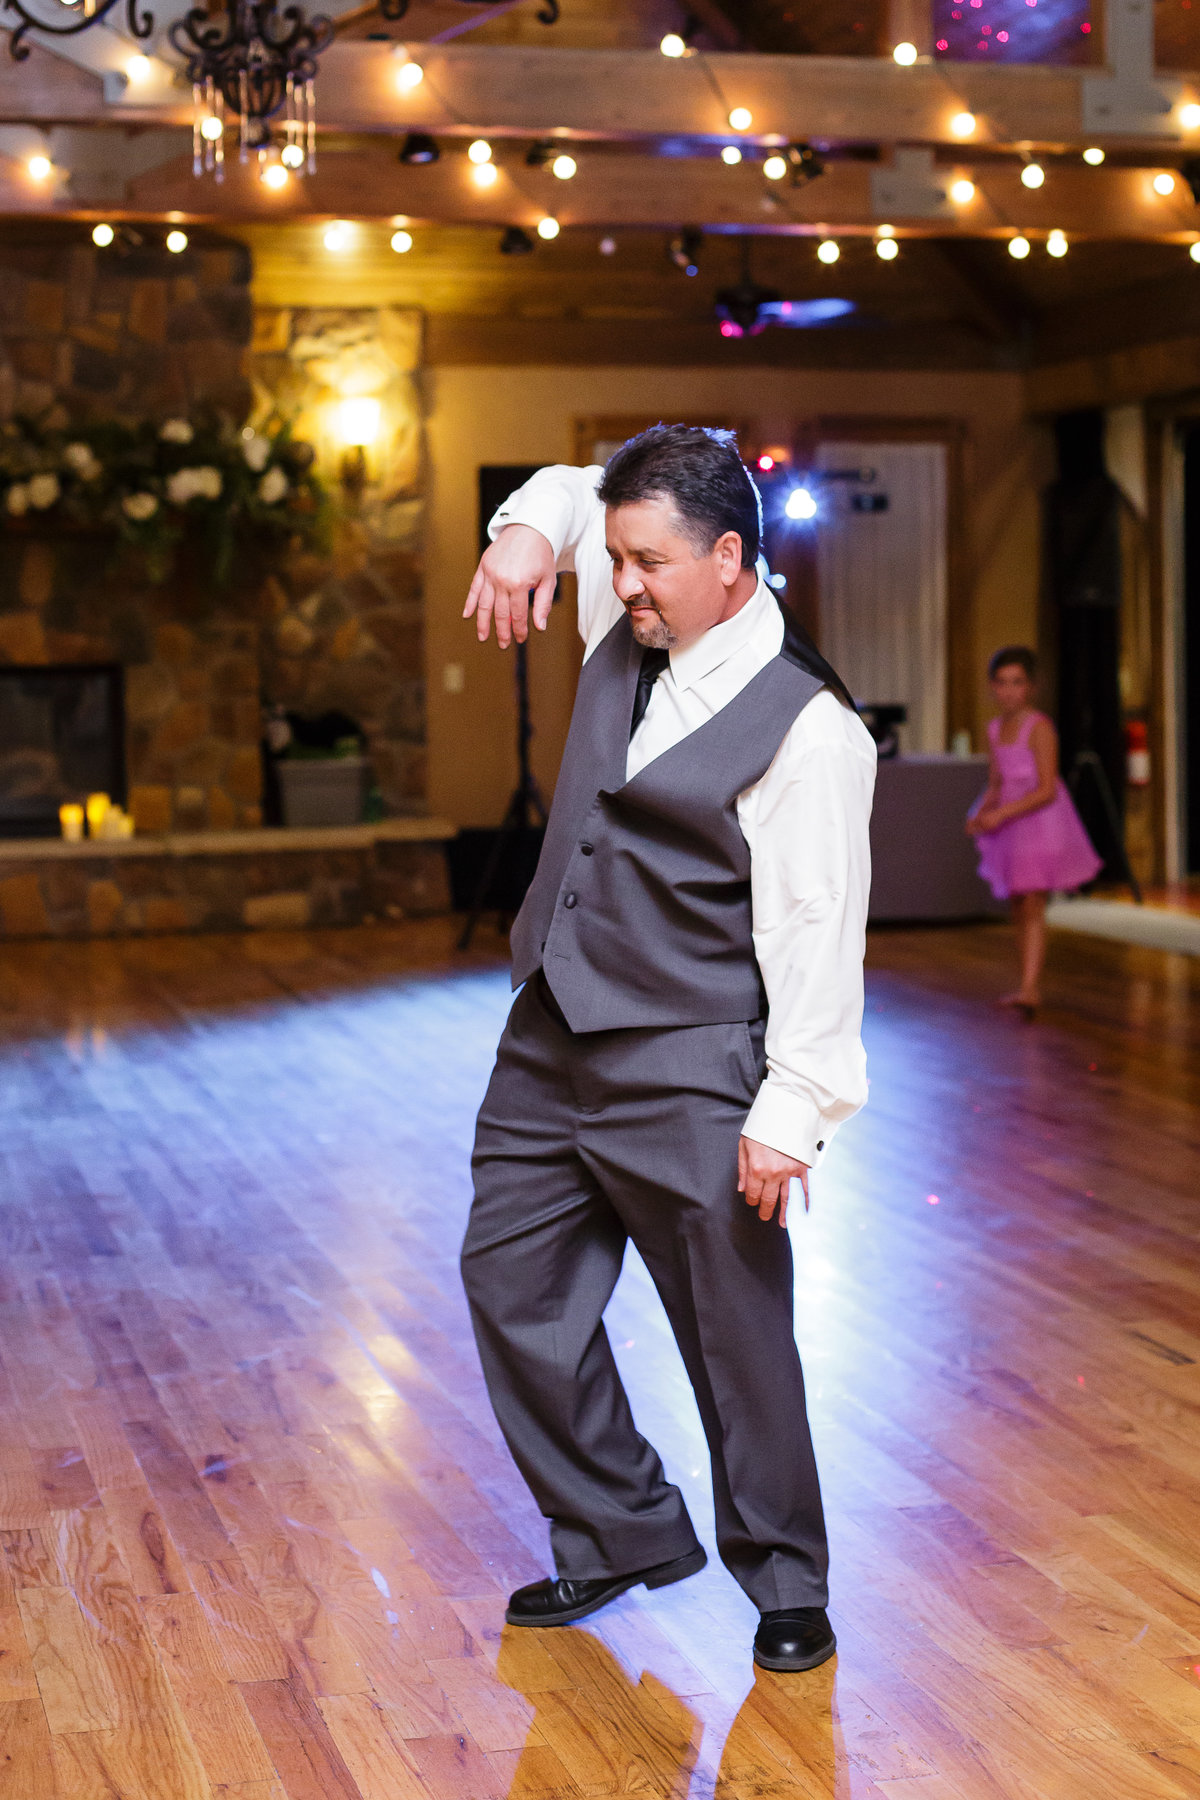 dance-shots-at-wedding-reception